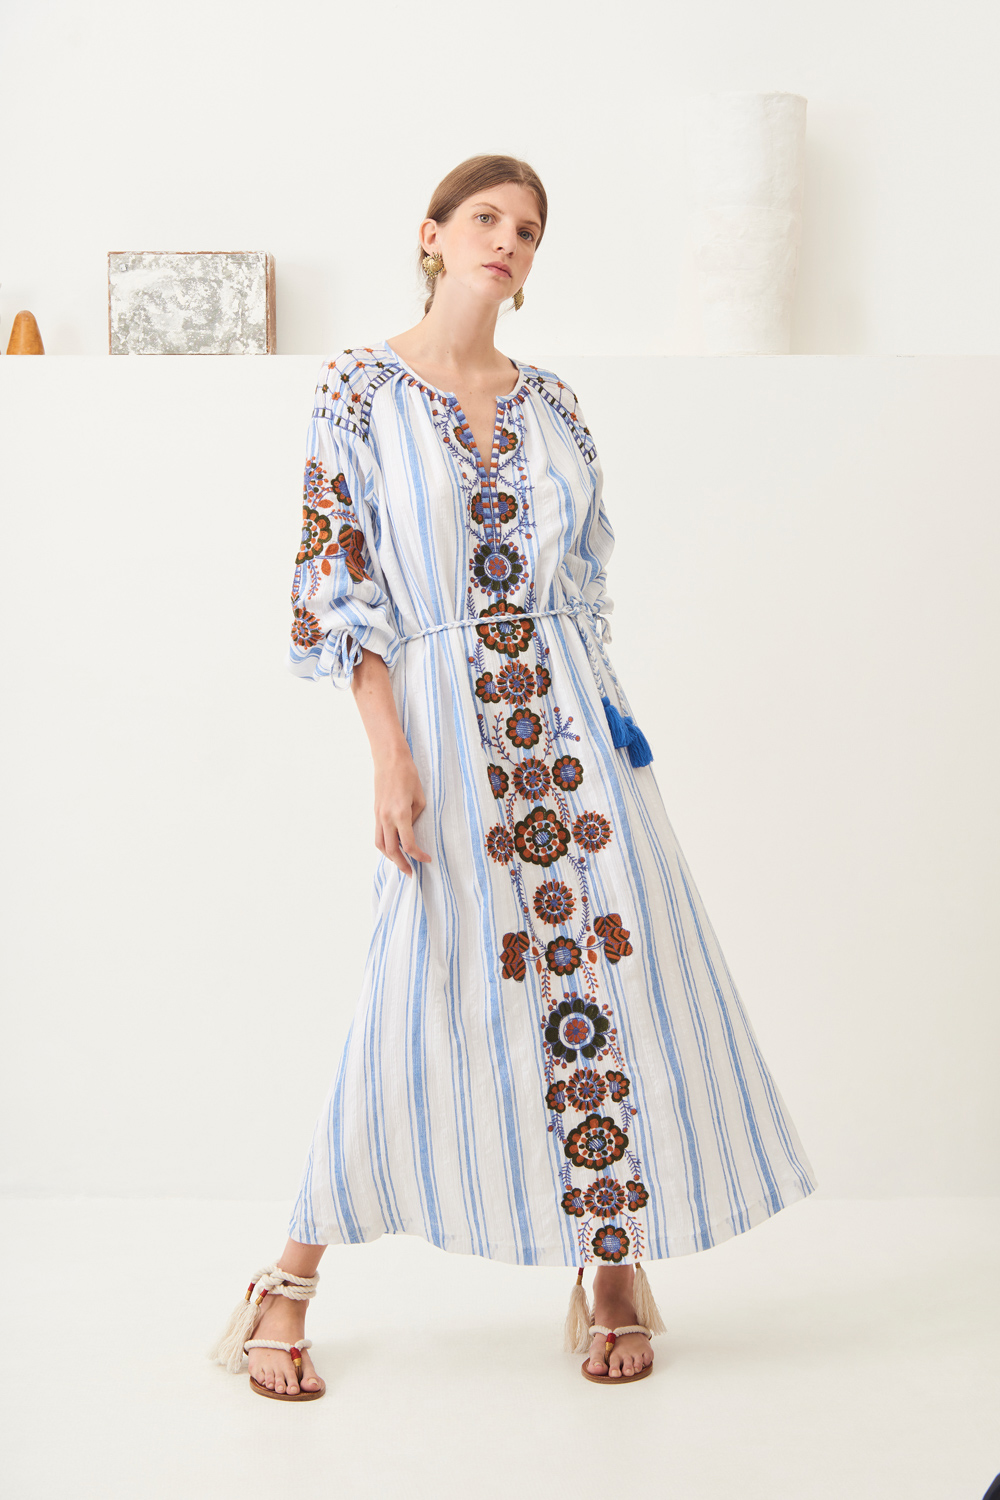 Robe longue brodée coton Camilla - Bleu - Antik Batik (photo)